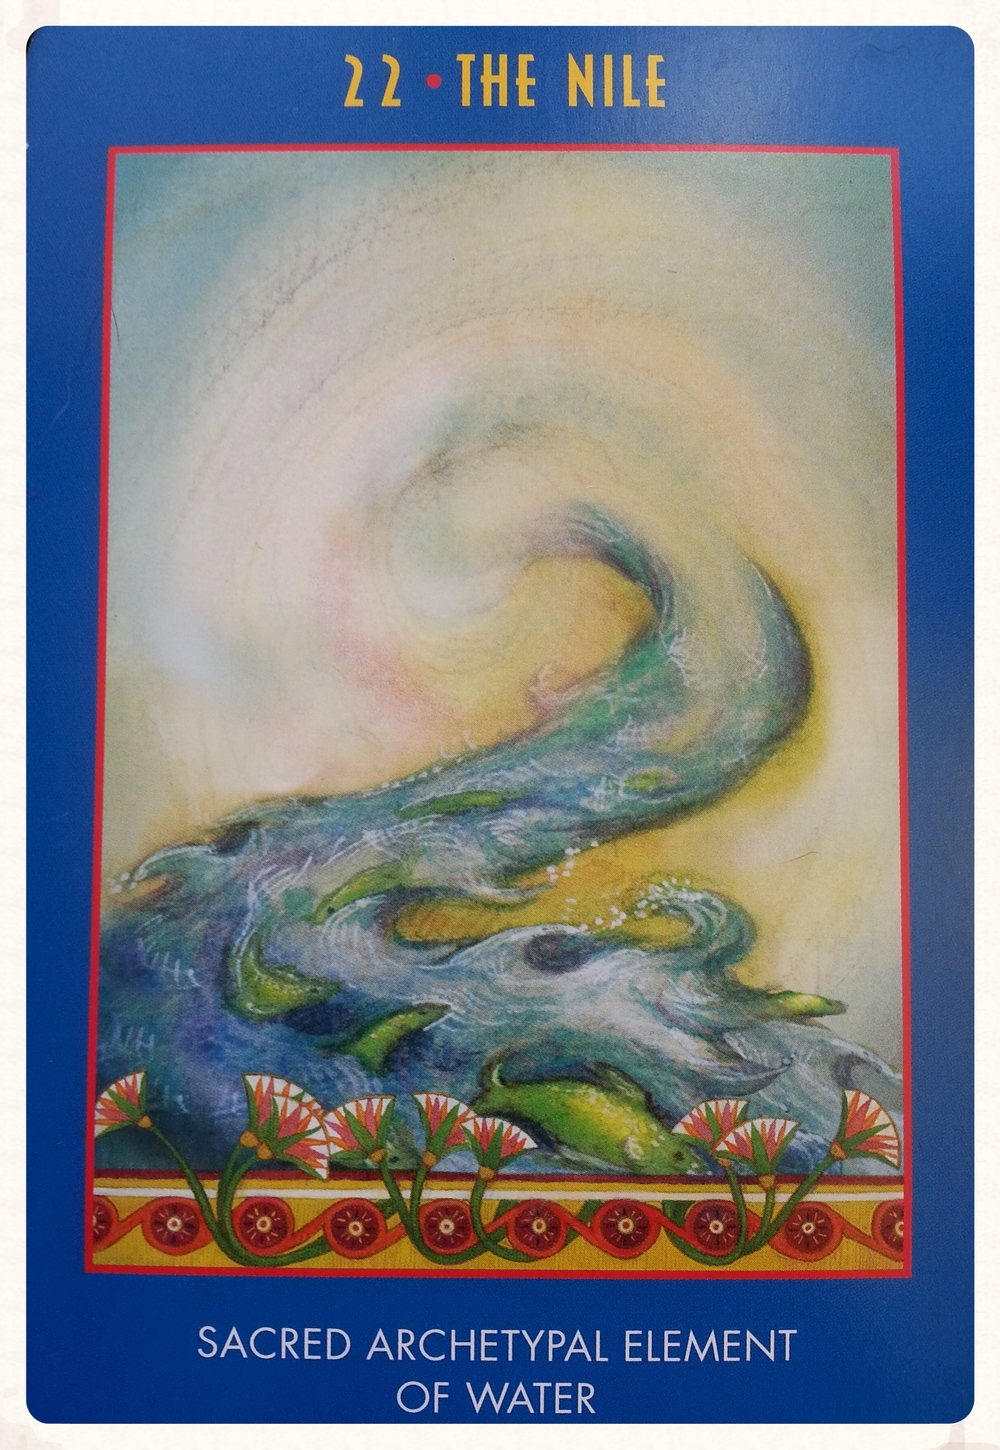 TYR'S-DAY AUGUST 25 TH 2015           -CARD 22- THE NILE-    SACRED ARCHETYPAL ELEMENT OF                      WATER